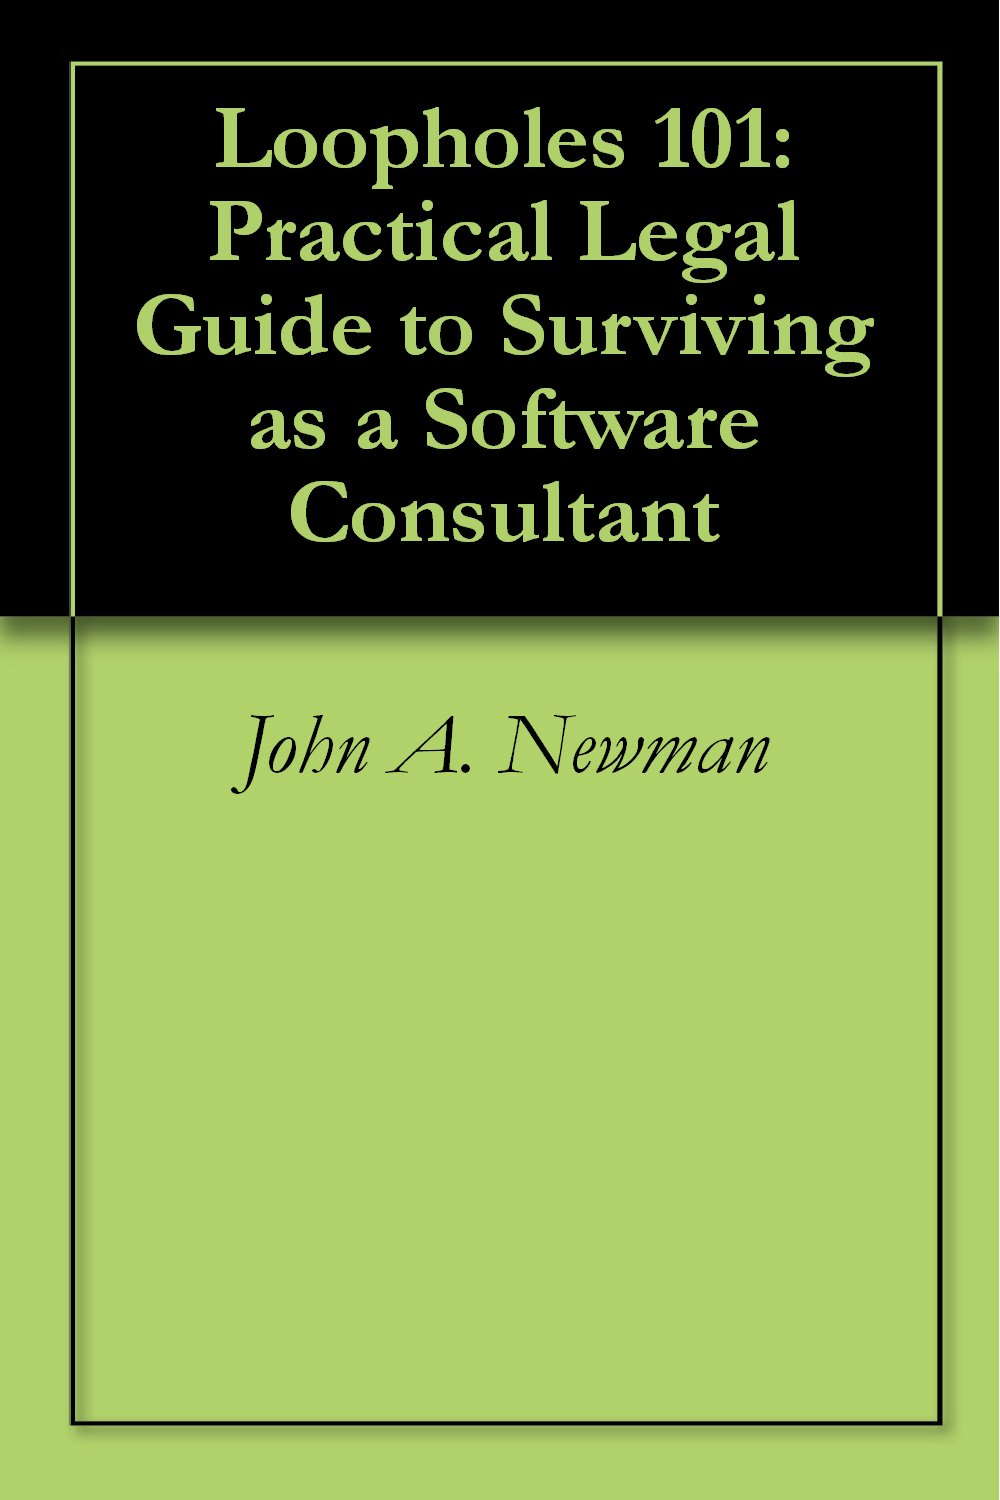 Loopholes 101: Practical Legal Guide to Surviving as a Software Consultant